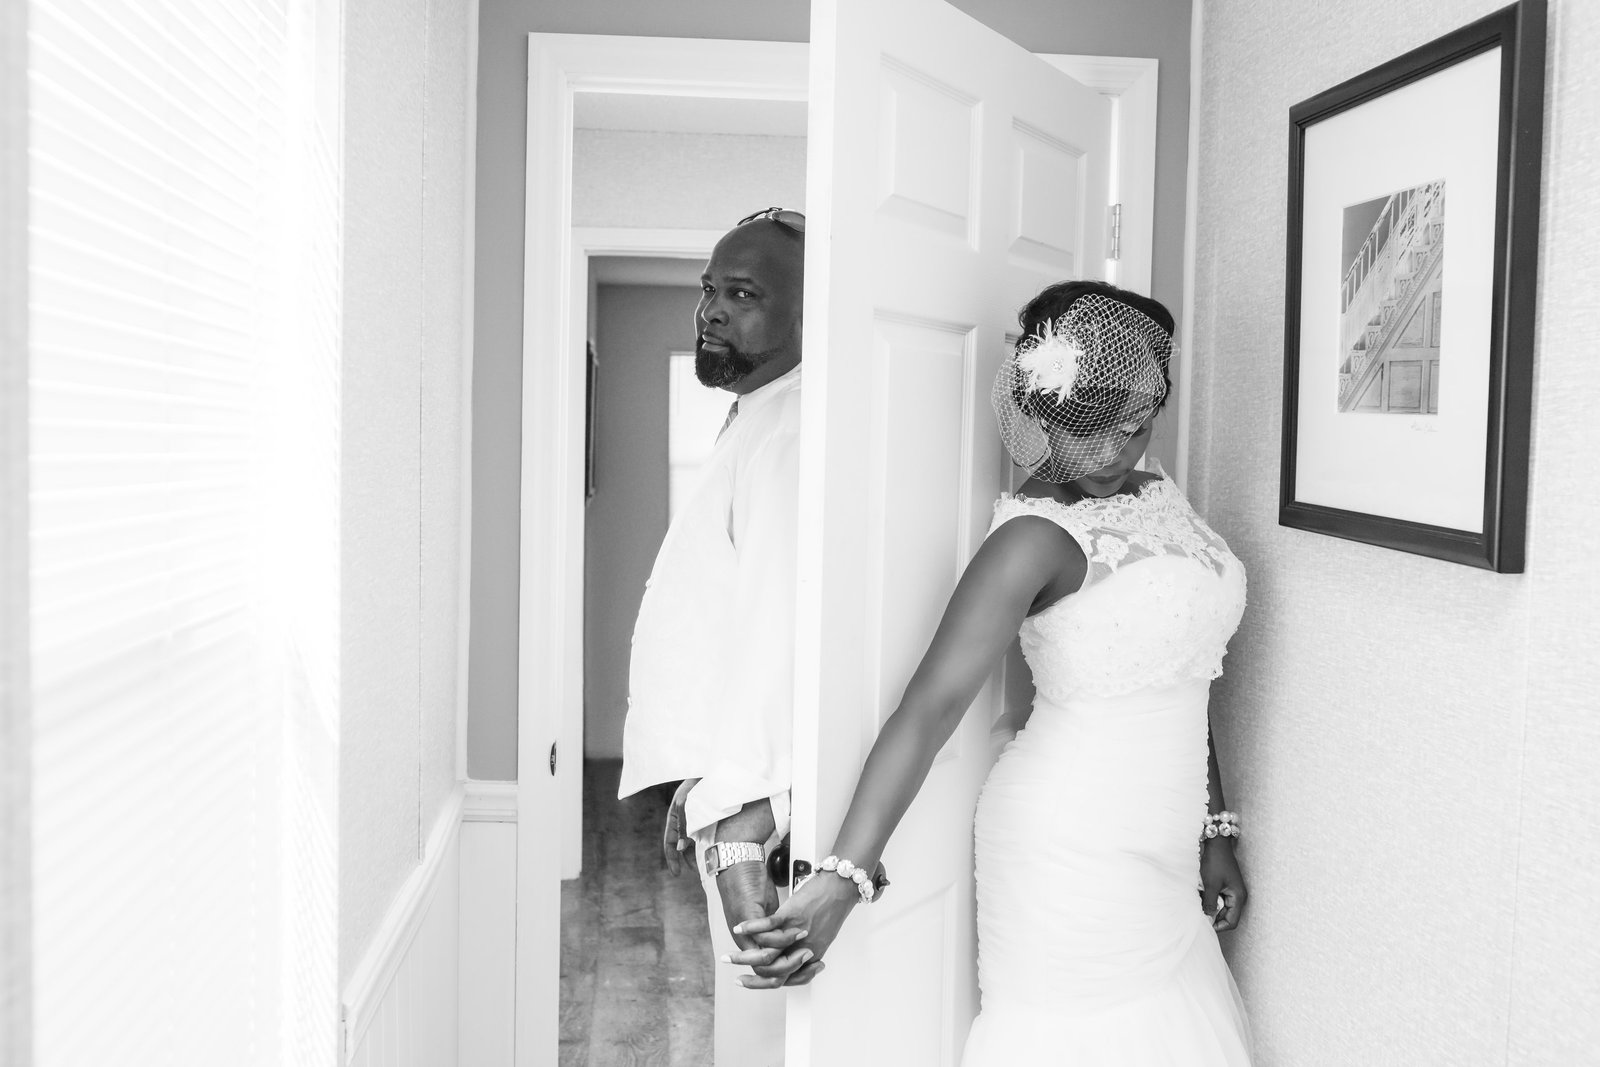 LBZZ-Photography-Nevels-Wedding-redone-1-of-2-nicole-smooth (1)